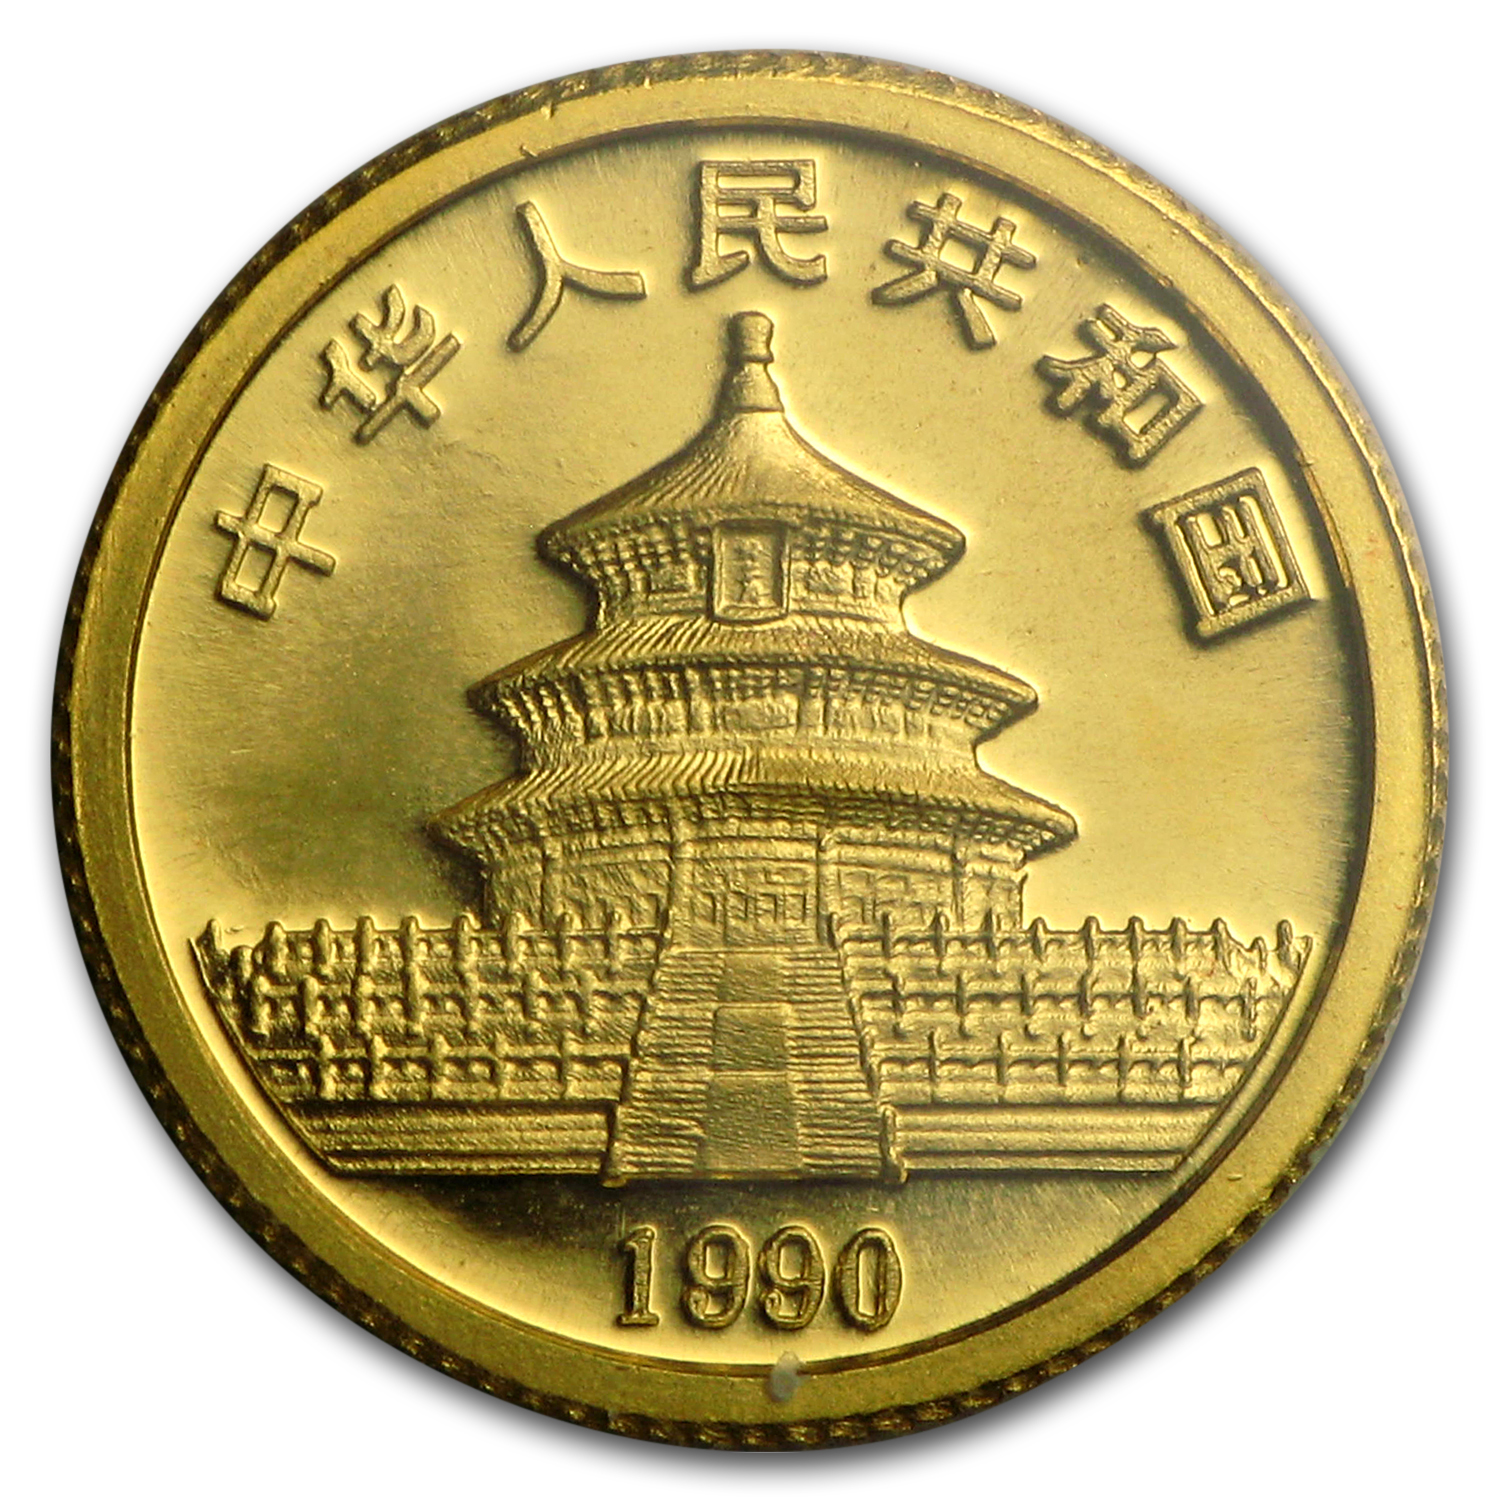 1990 China 1/20 oz Gold Panda Large Date BU (Sealed)